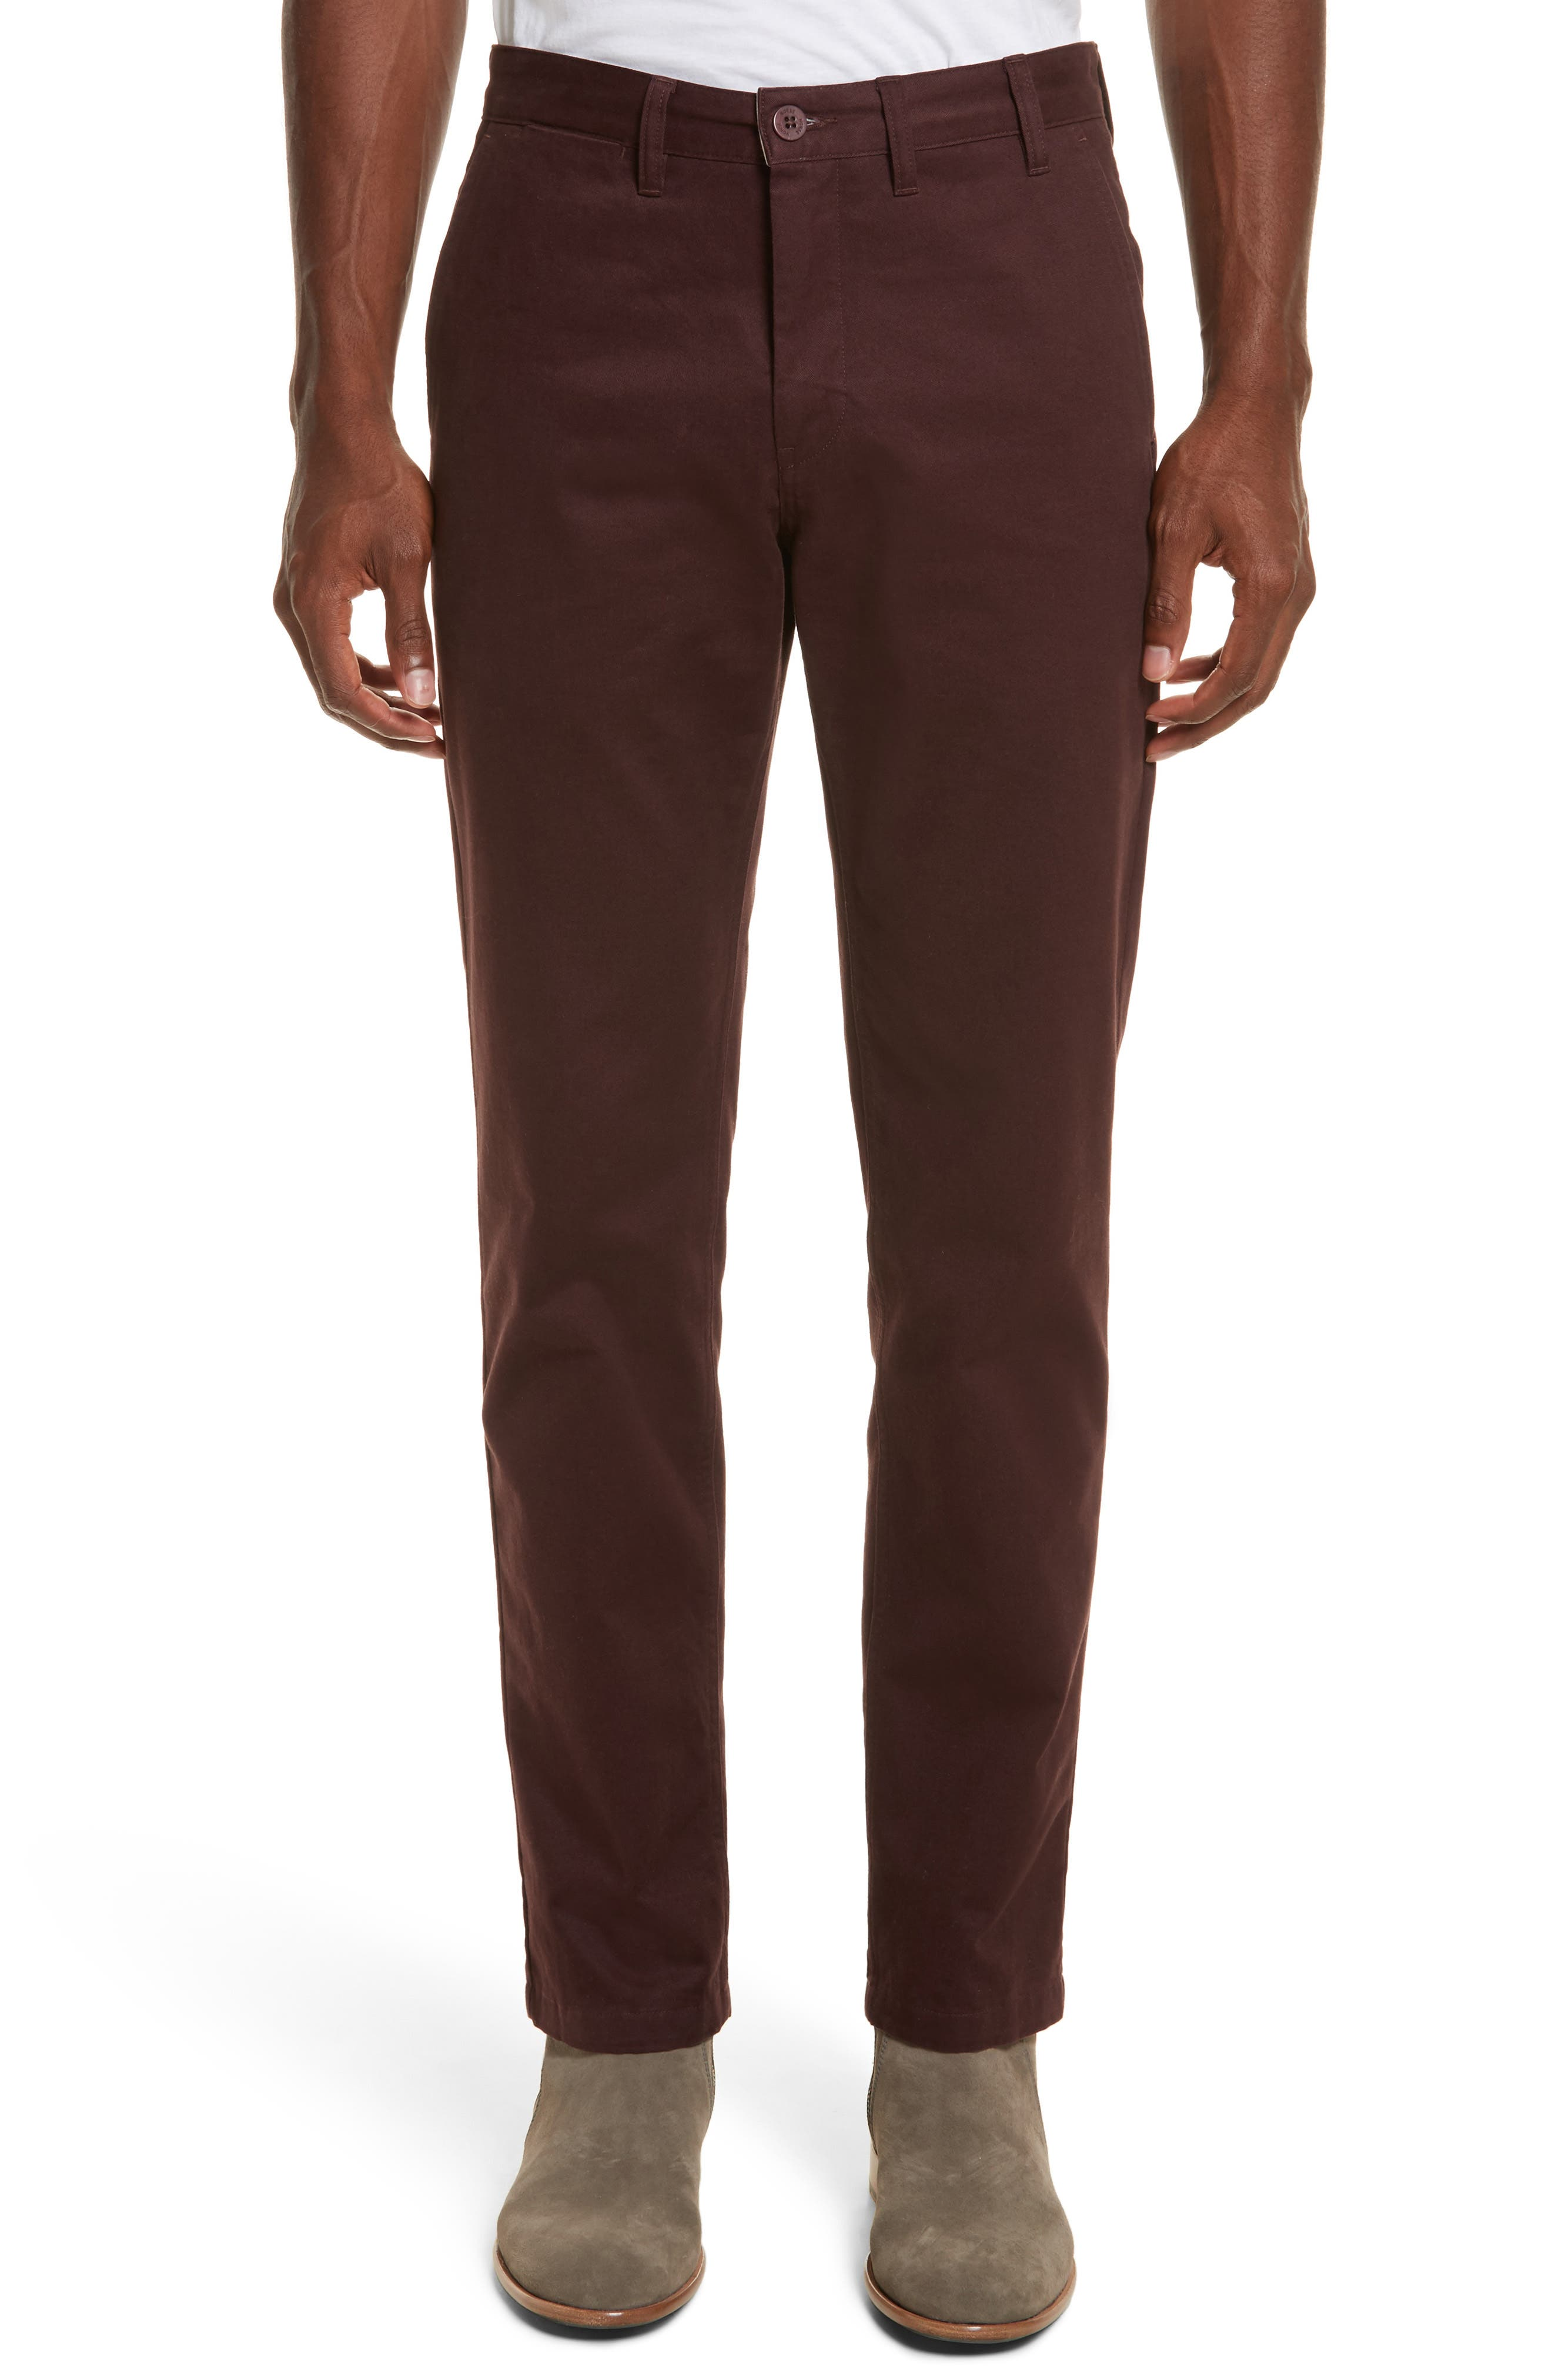 Aros Brushed Twill Chinos,                         Main,                         color,